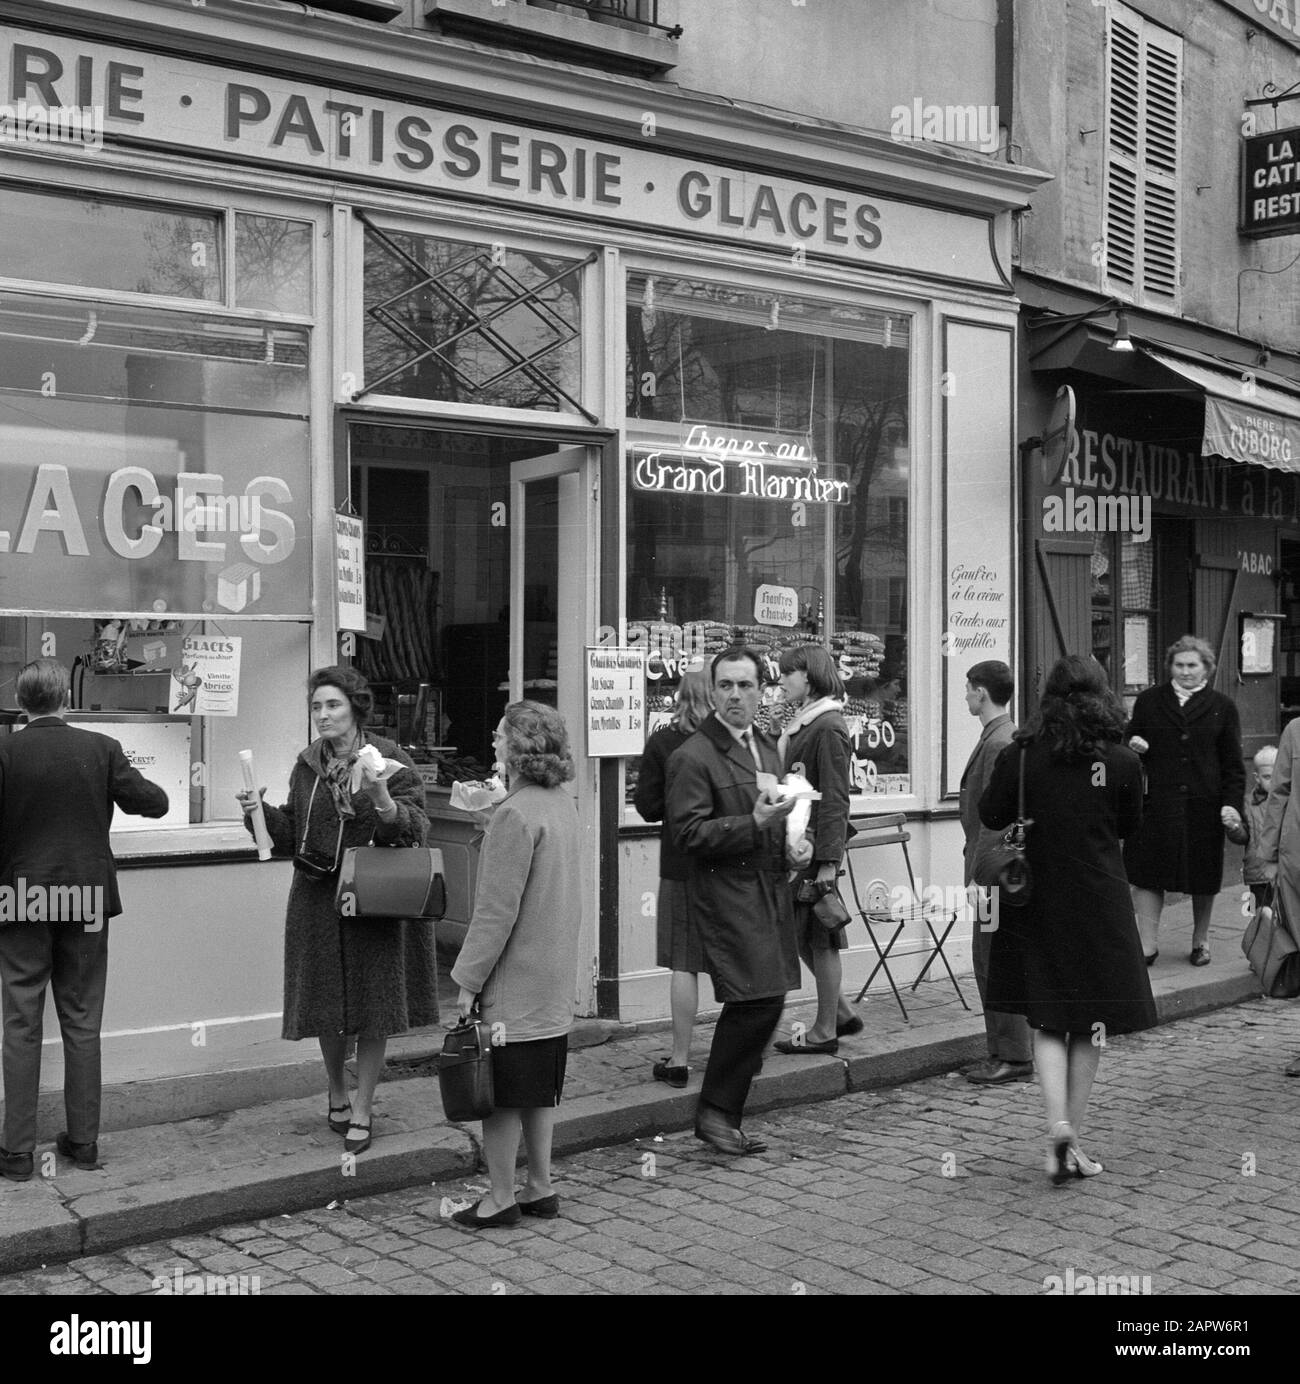 Pariser Bilder Paris Street Life Customers On The Sidewalk In Front Of A Pastry Shop Date 1965 Location France Paris Keywords Confectioners Pastries Street Statues Shops Stock Photo Alamy